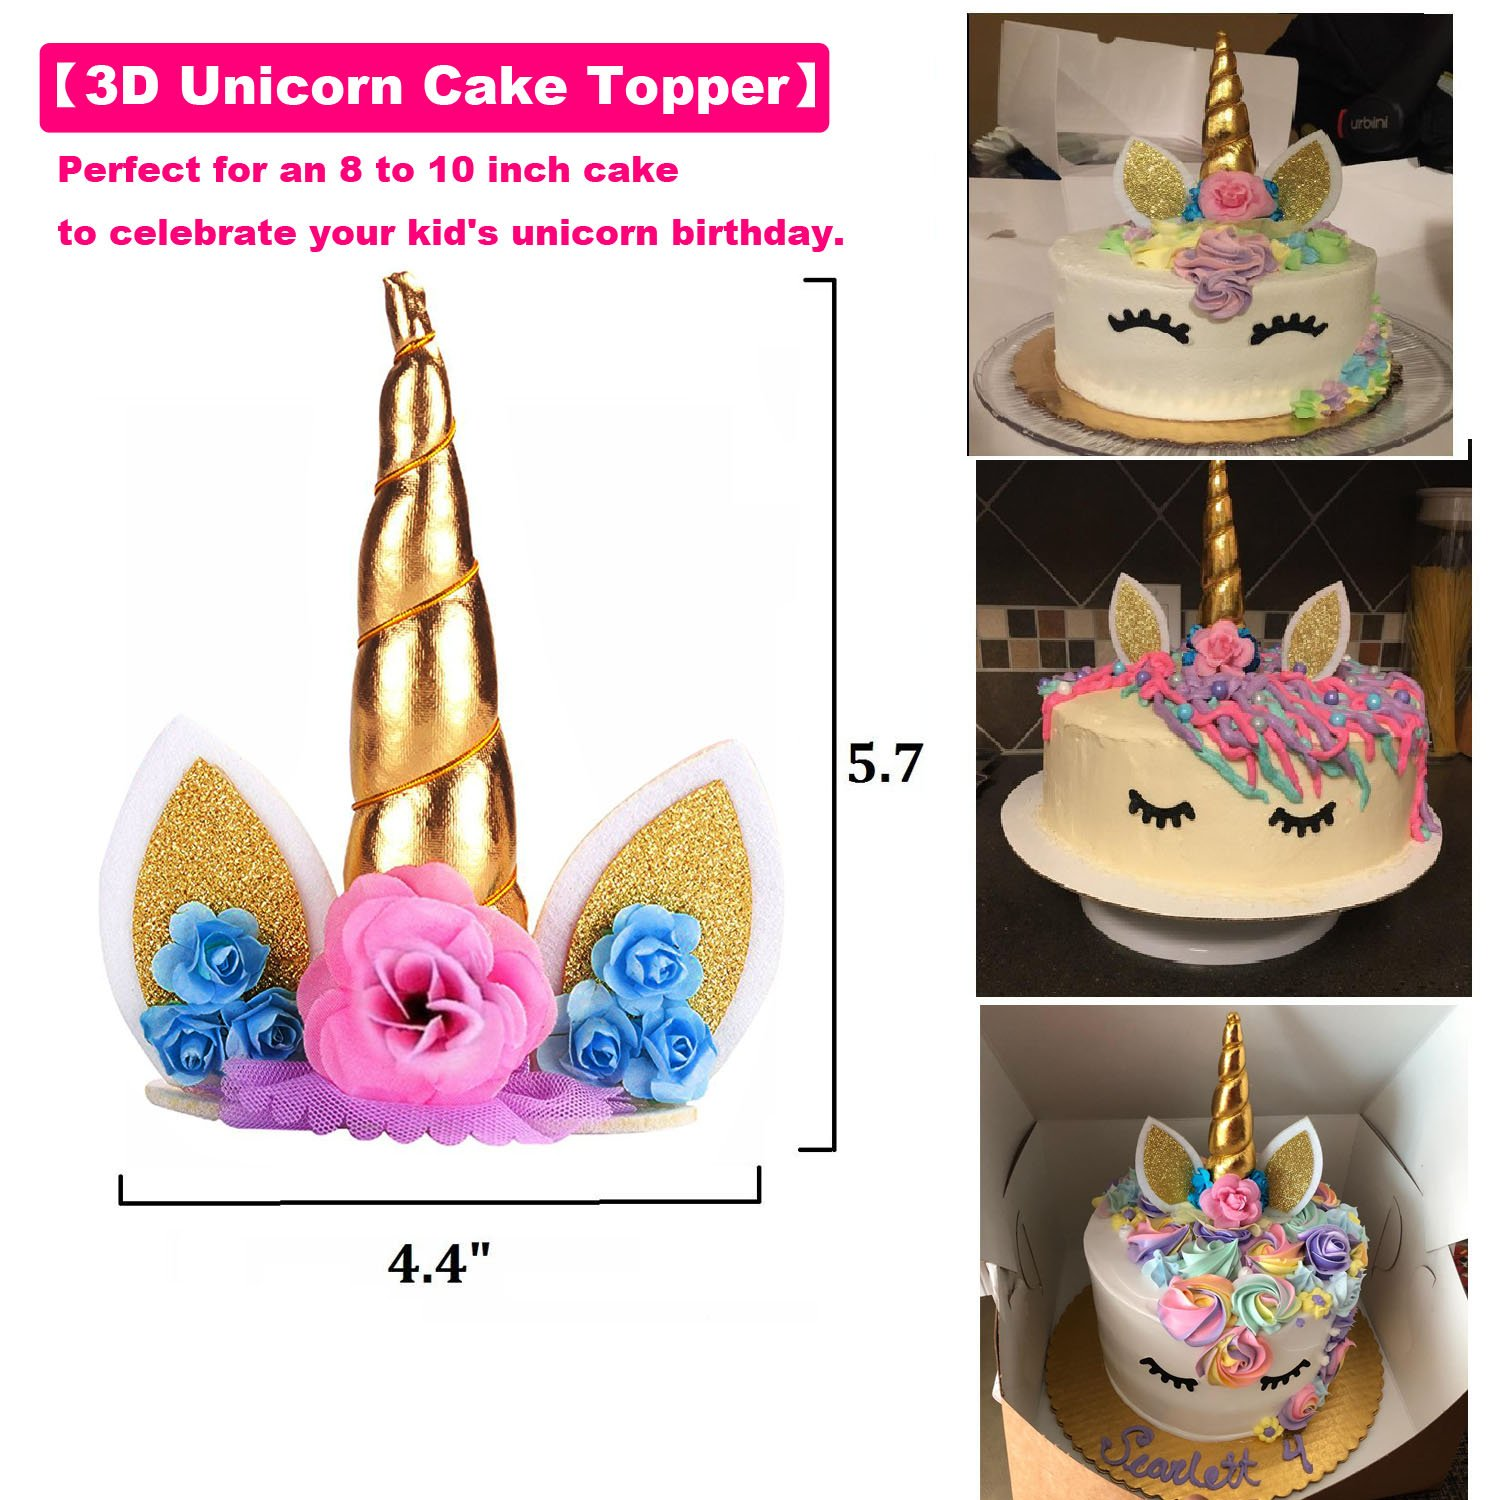 Baby Shower and Wedding Unicorn Cake Topper with Eyelashes NALAKUVARA Handmade 3D Gold Reusable Unicorn Birthday Cake Decorations Set Favors for Party Supplies 8 inch High